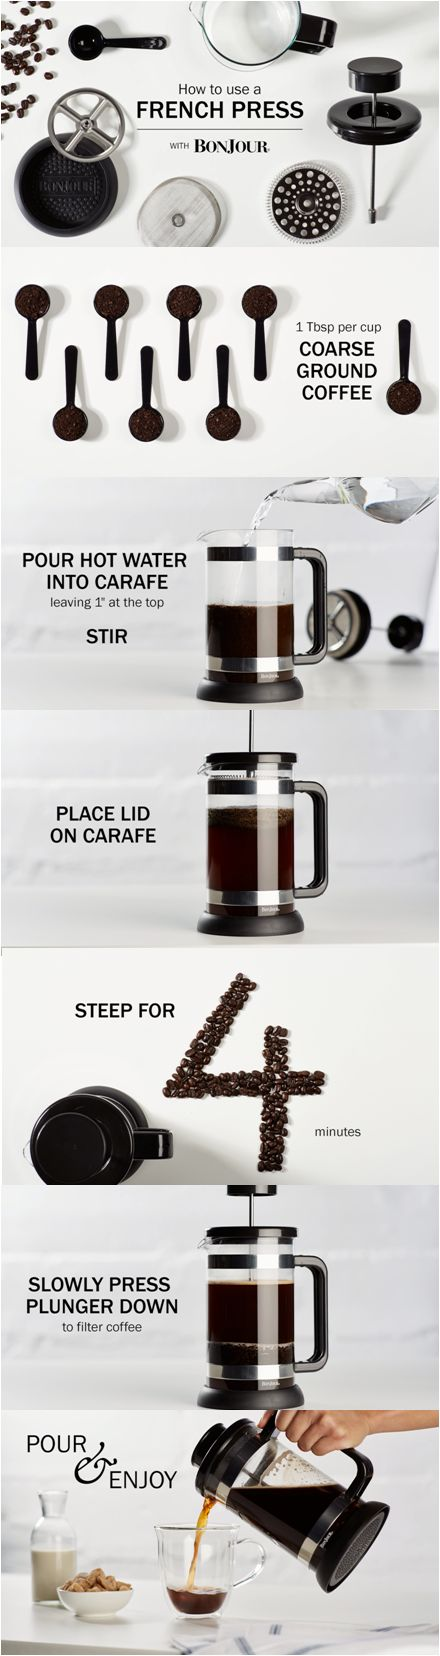 How to Use a French Press Coffee Brewer. Step-by-step instructions. Click on the image for a video tutorial.